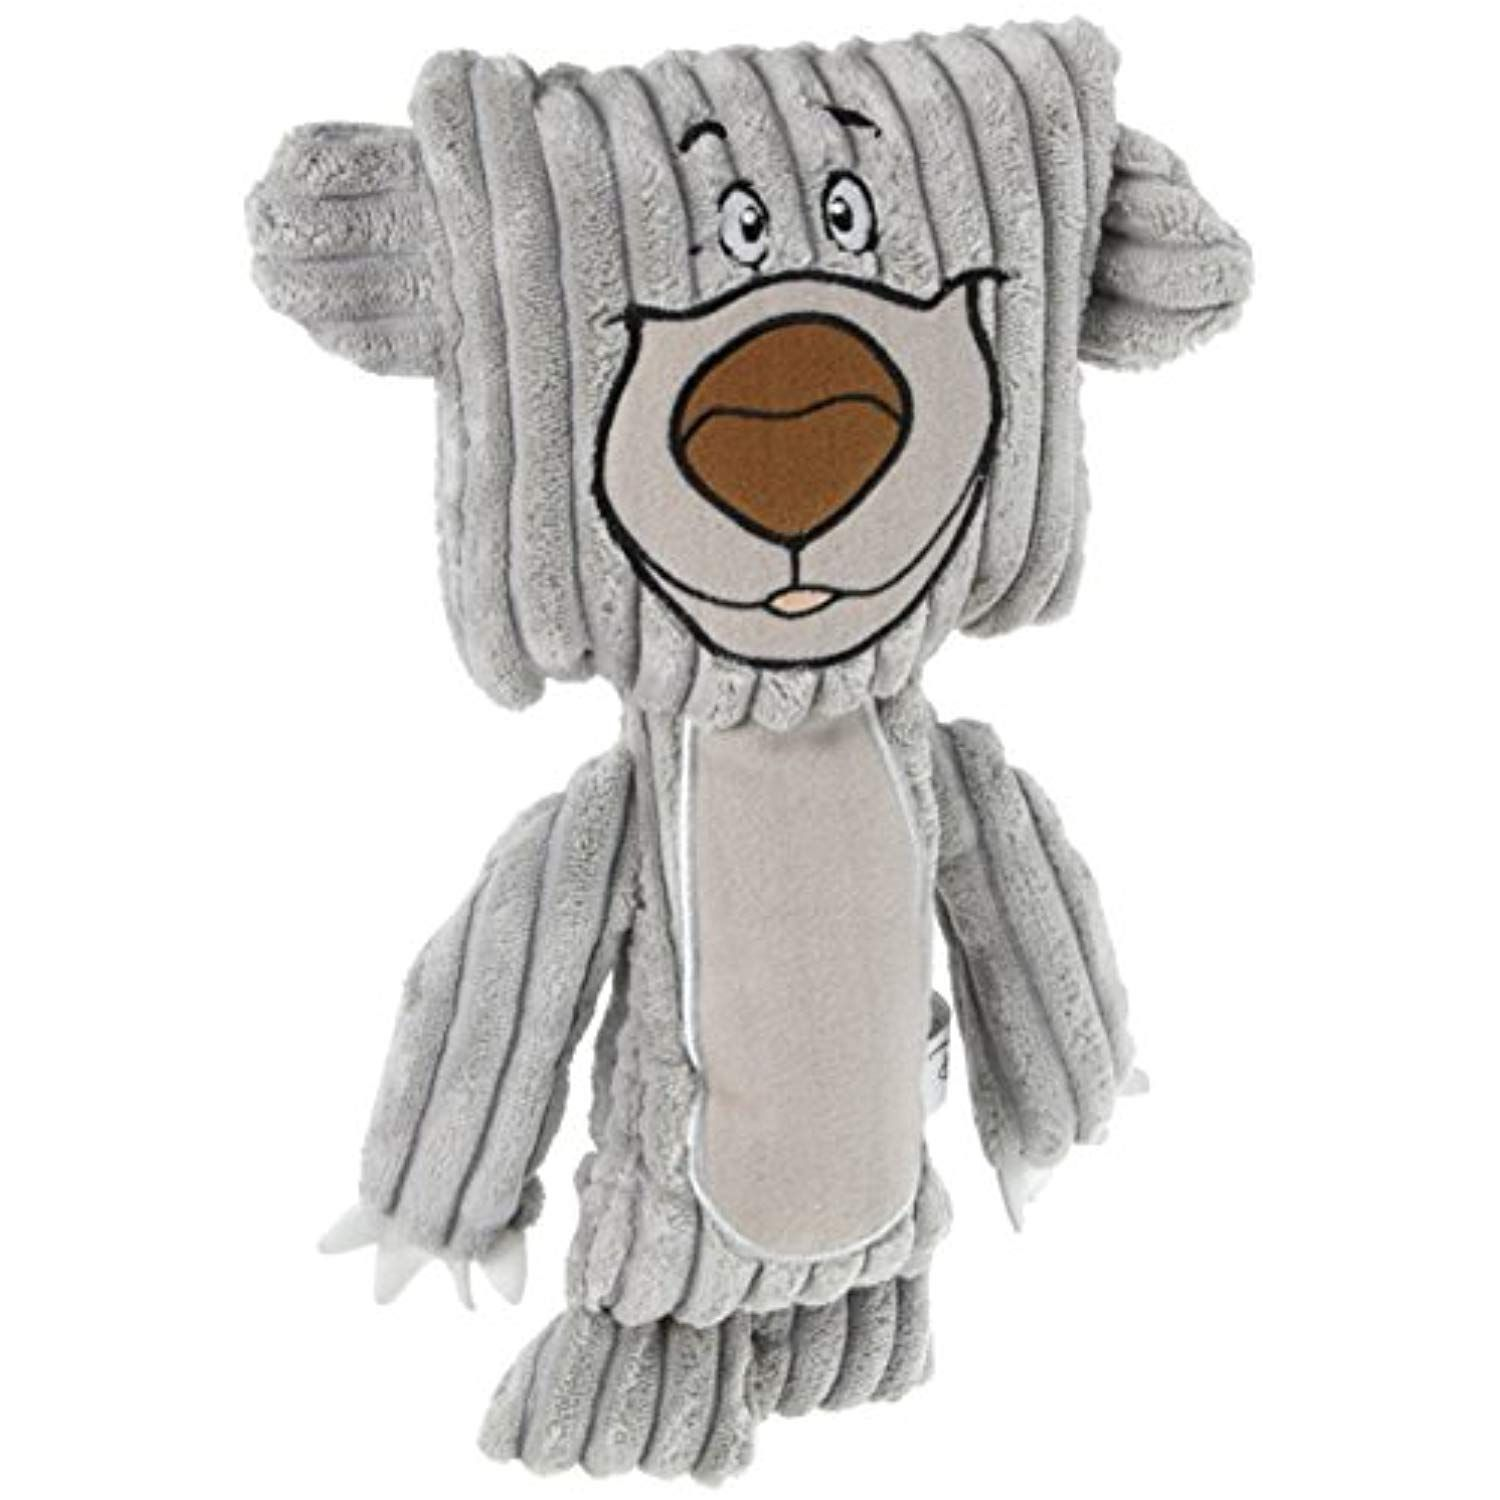 Disney Square Heads Jungle Book Baloo Dog Toy You Can Get More